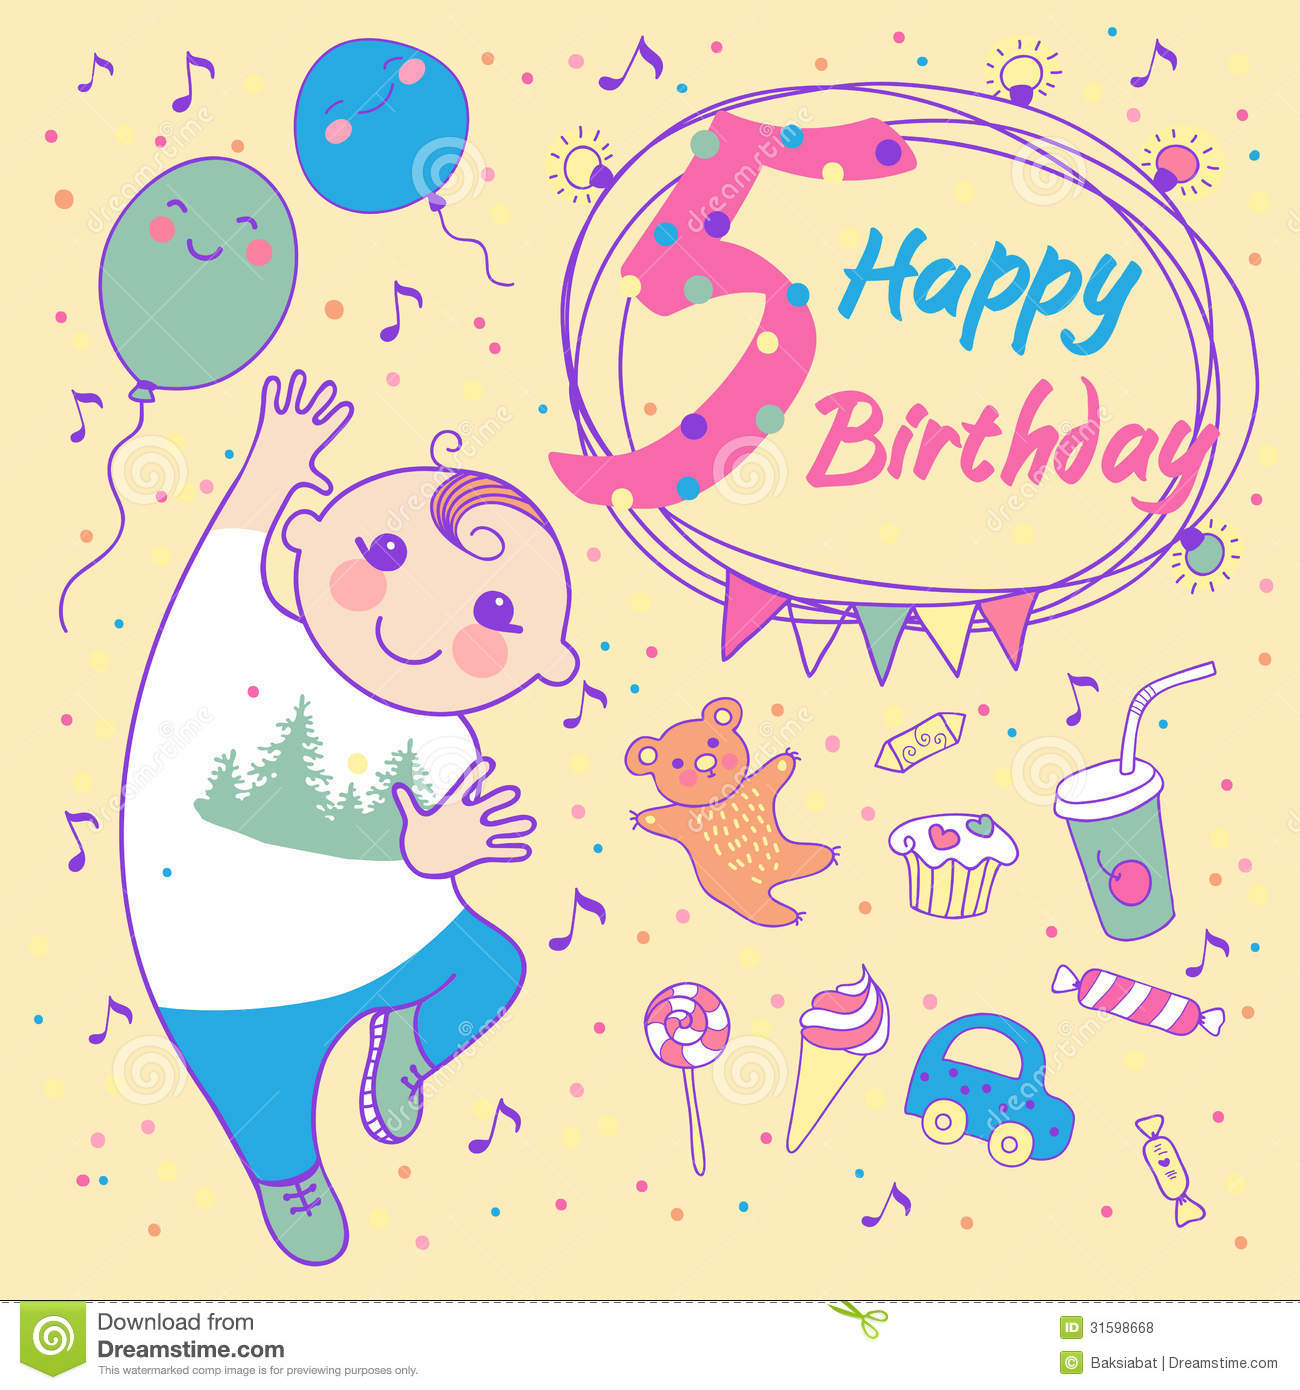 Birthday Of The Little Boy 5 Years Greeting Card Stock Vector Happy Birthday Wishes 5 Year Boy